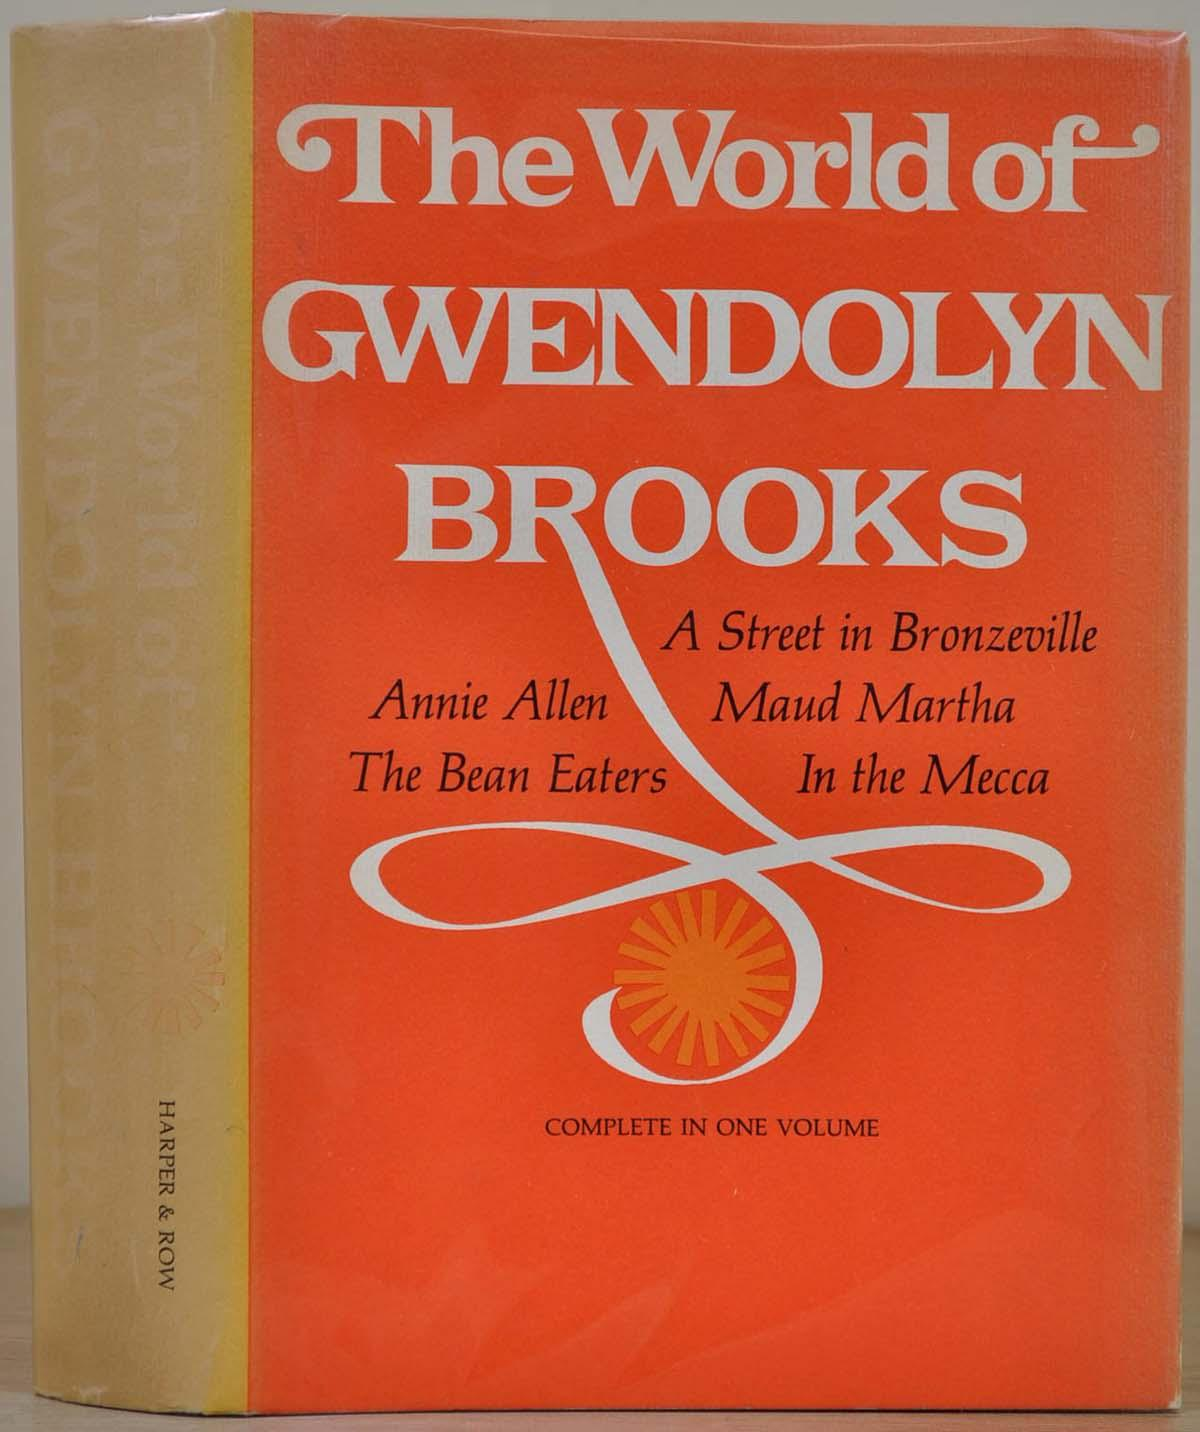 The World of Gwendolyn Brooks. Signed by Gwendolyn Brooks: Brooks, Gwendolyn